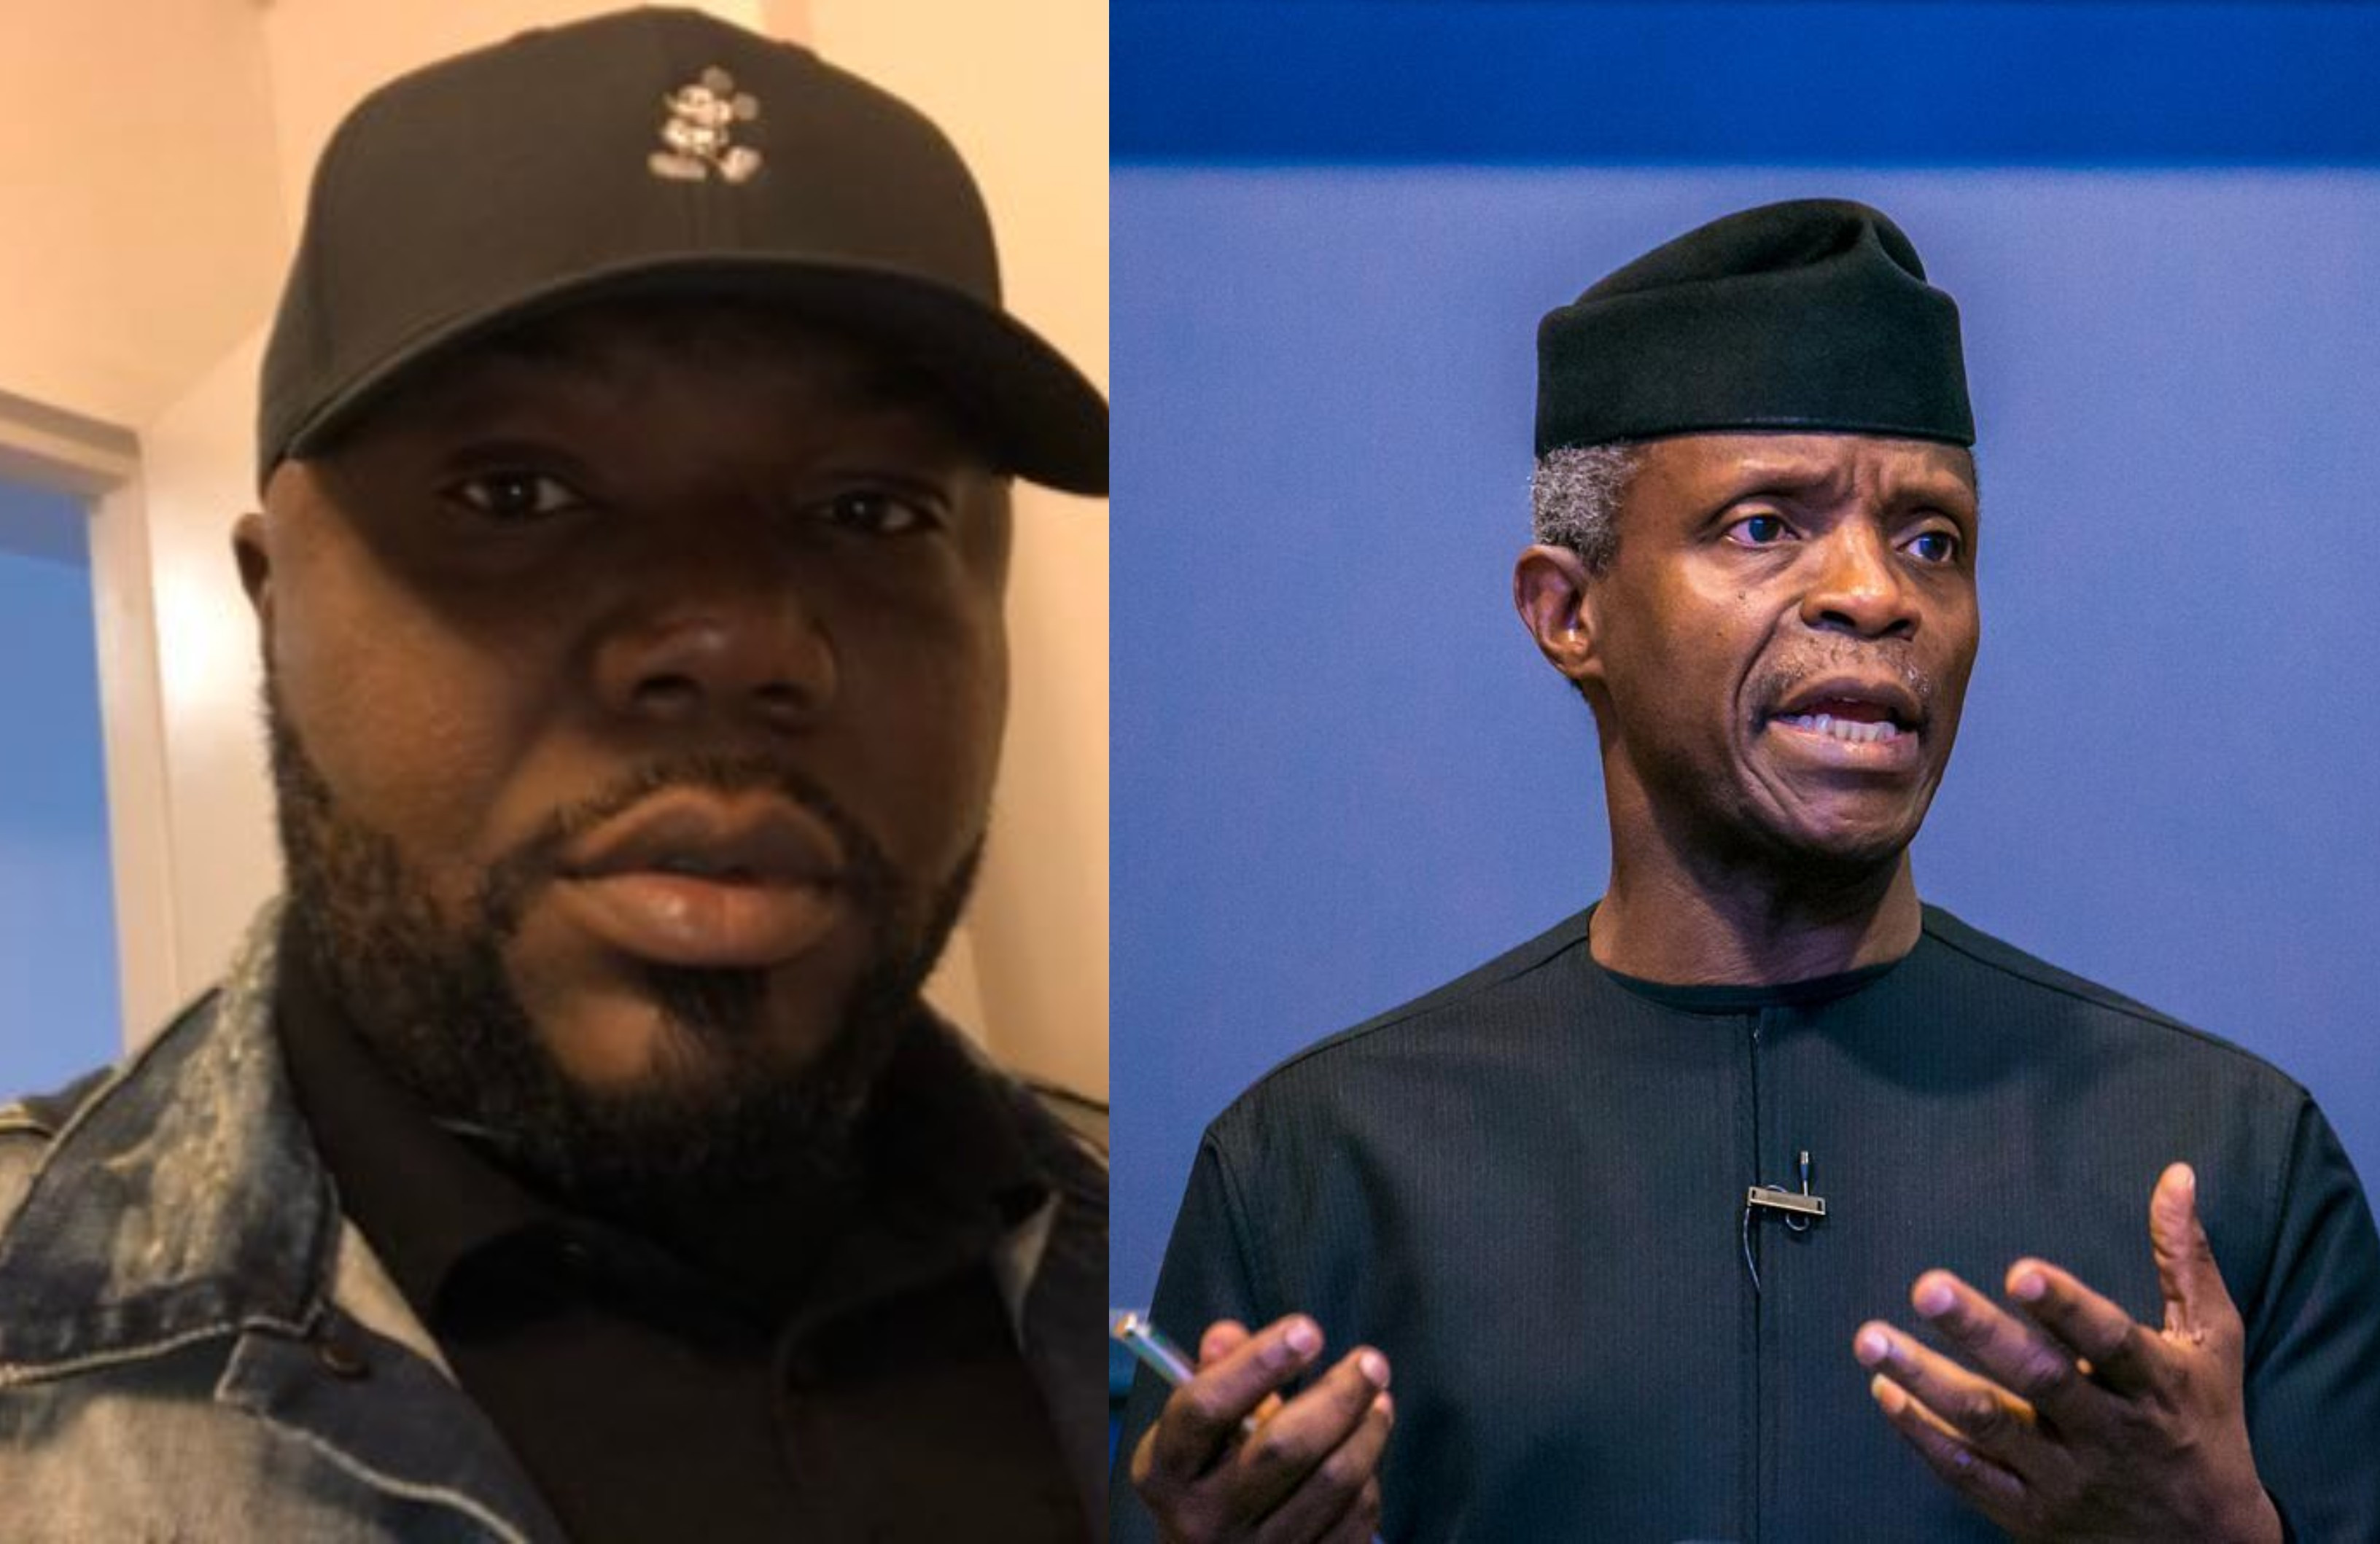 If Osinbajo wants to go to court, he needs to resign first and sue me - Jackson Ude reacts to Vice President's lawsuit lindaikejisblog